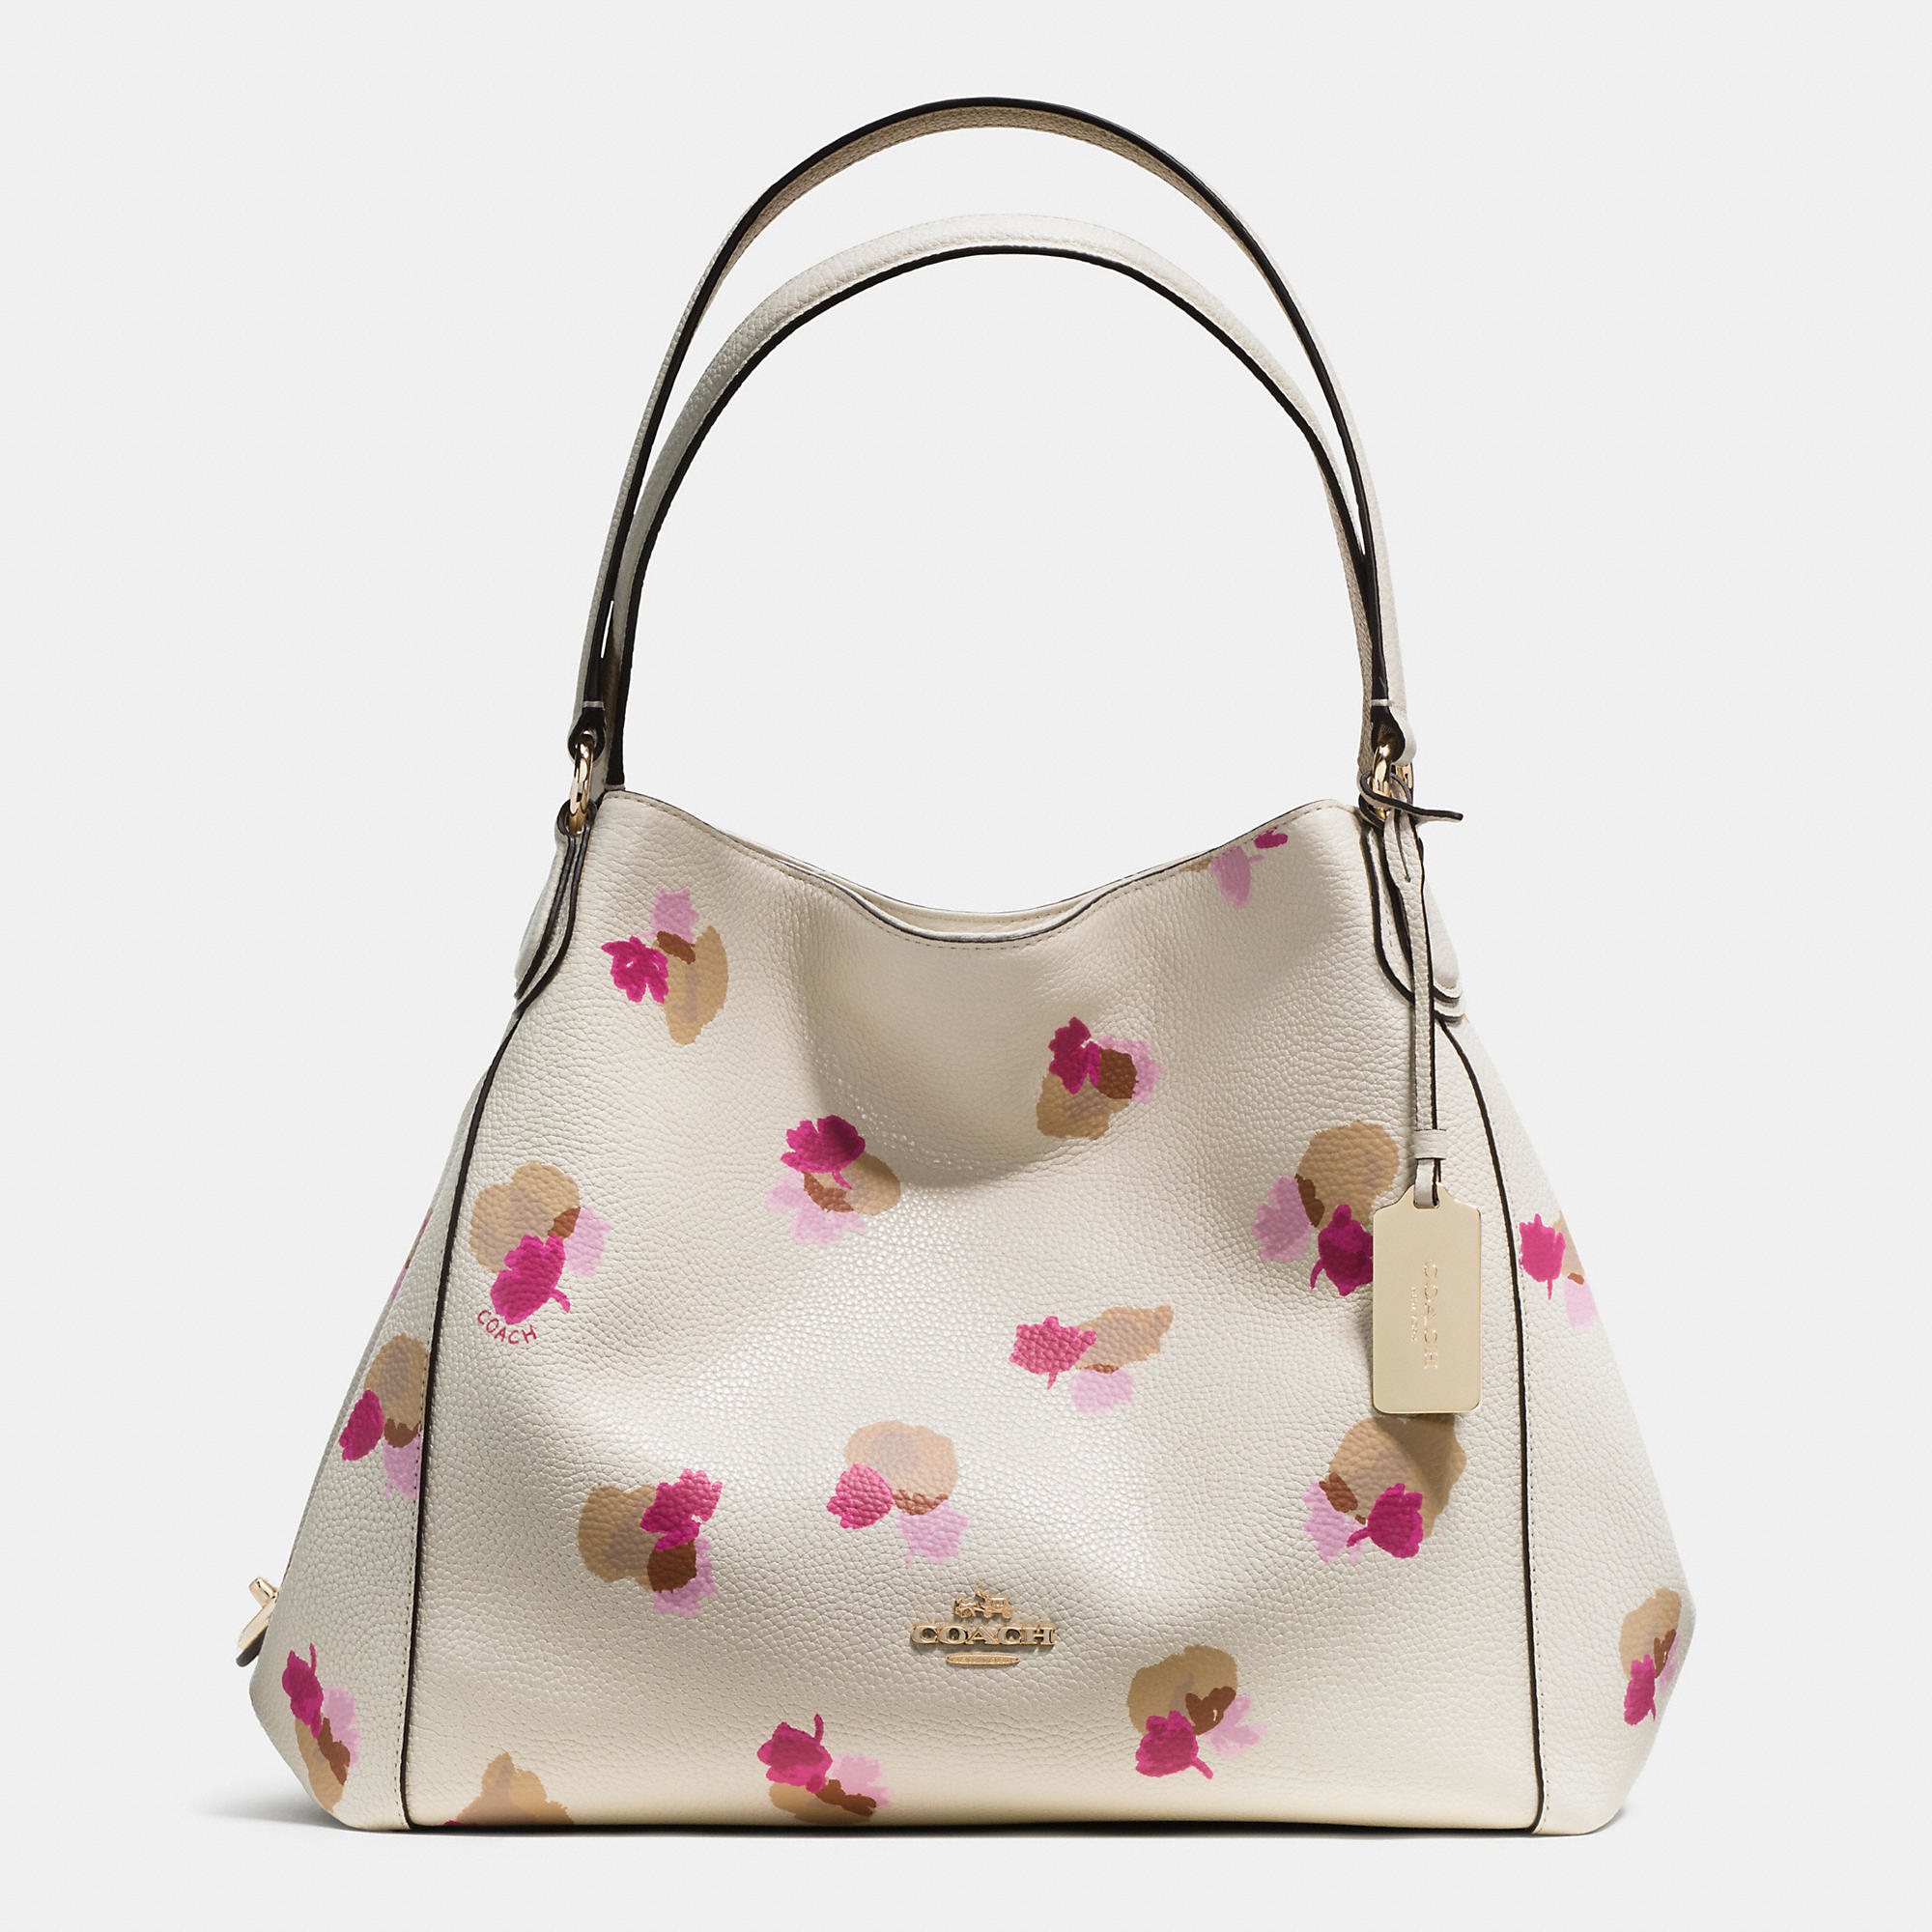 COACH Edie Shoulder Bag 31 In Floral Print Leather - Lyst 24f0dbc64c339